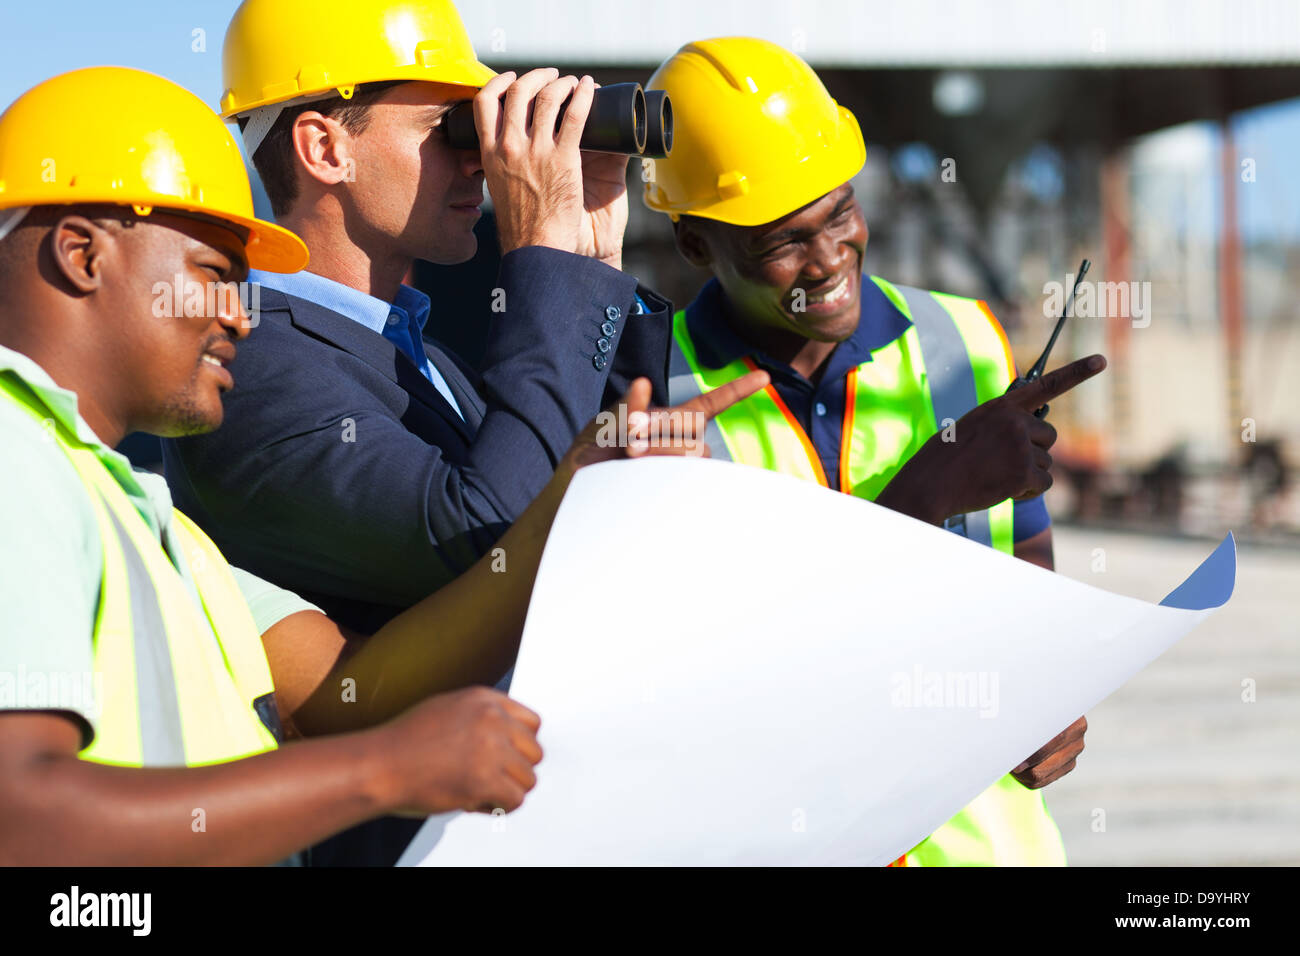 project manager using binoculars looking at the construction site with workers - Stock Image